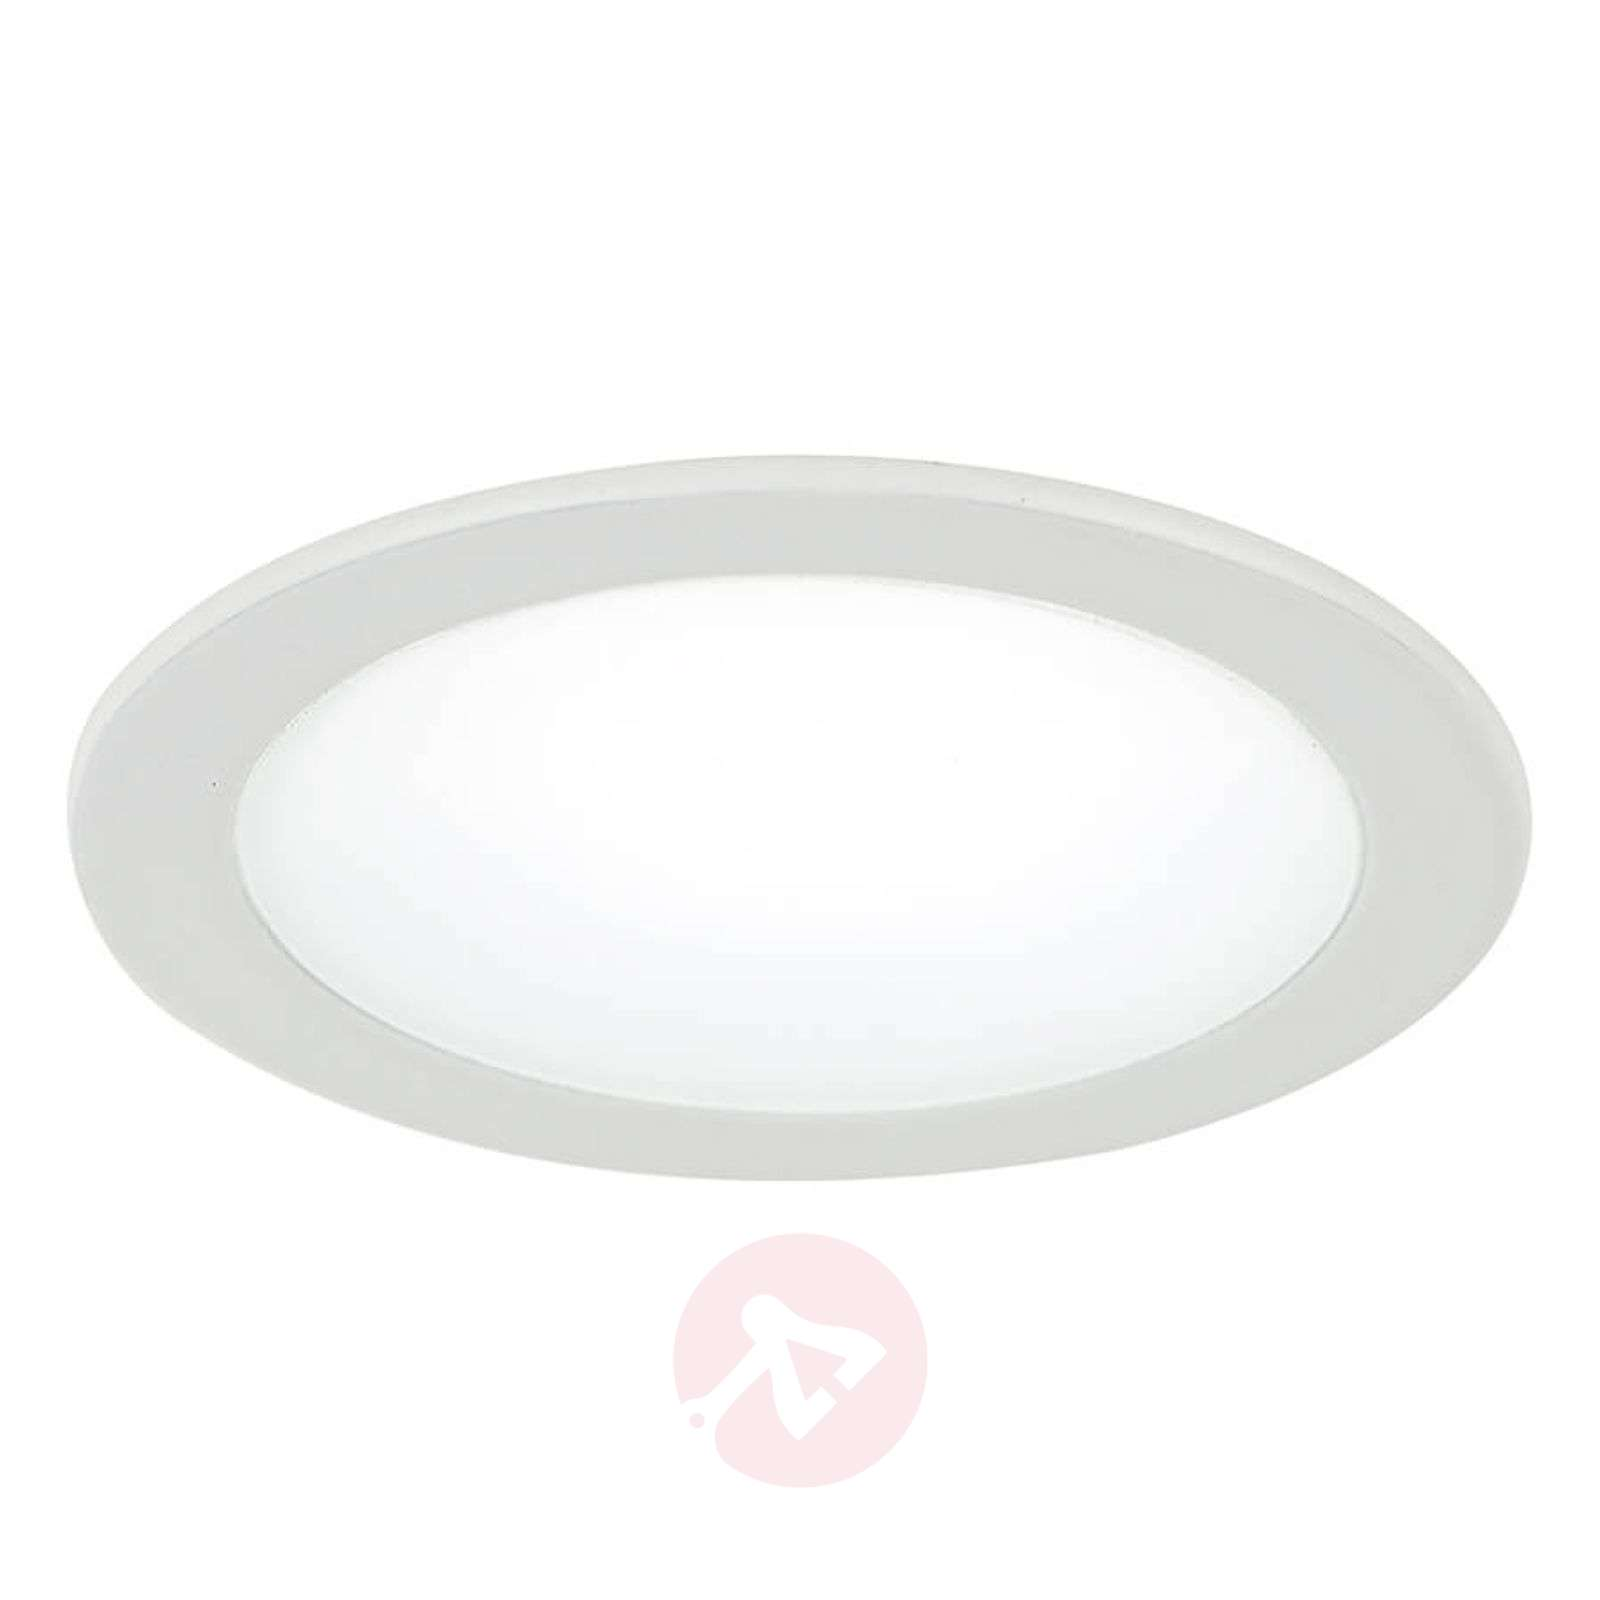 Lampe encastrable LED Fusion en set de 3-3006536-01